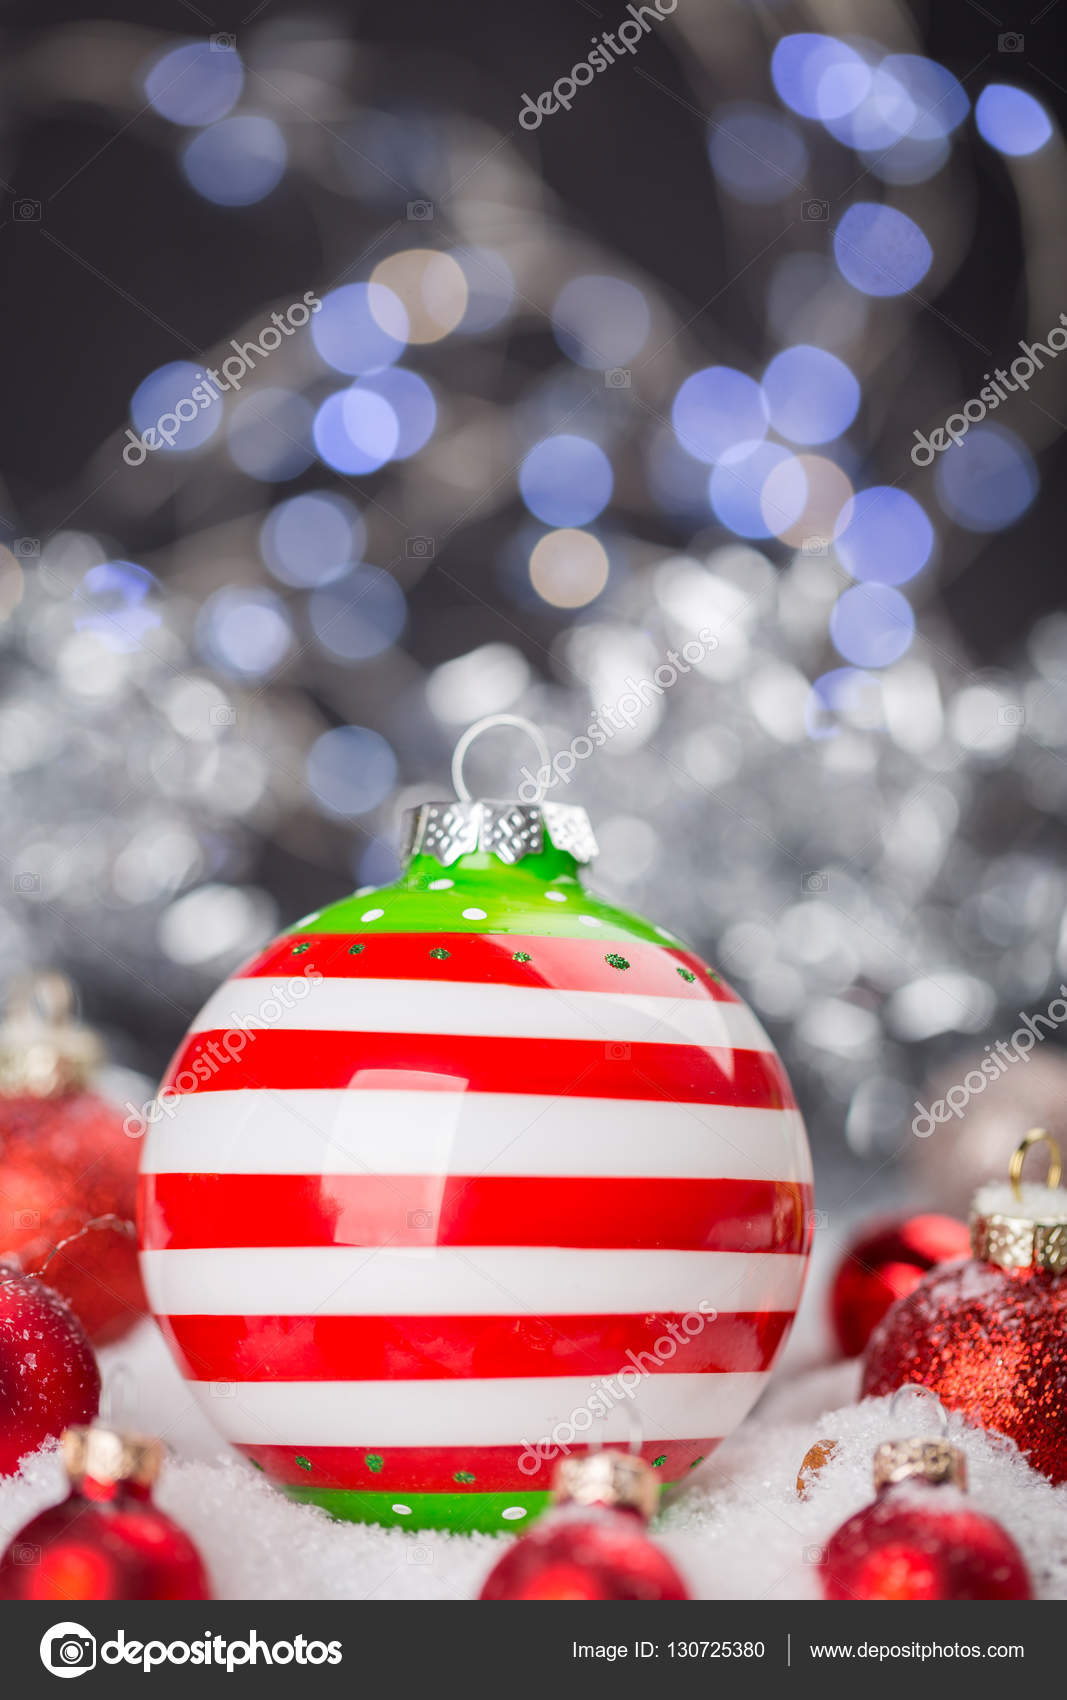 close up still life of red christmas ball decoration with painted white snowflakes surrounded by shiny red globes on dark gray background with copy space